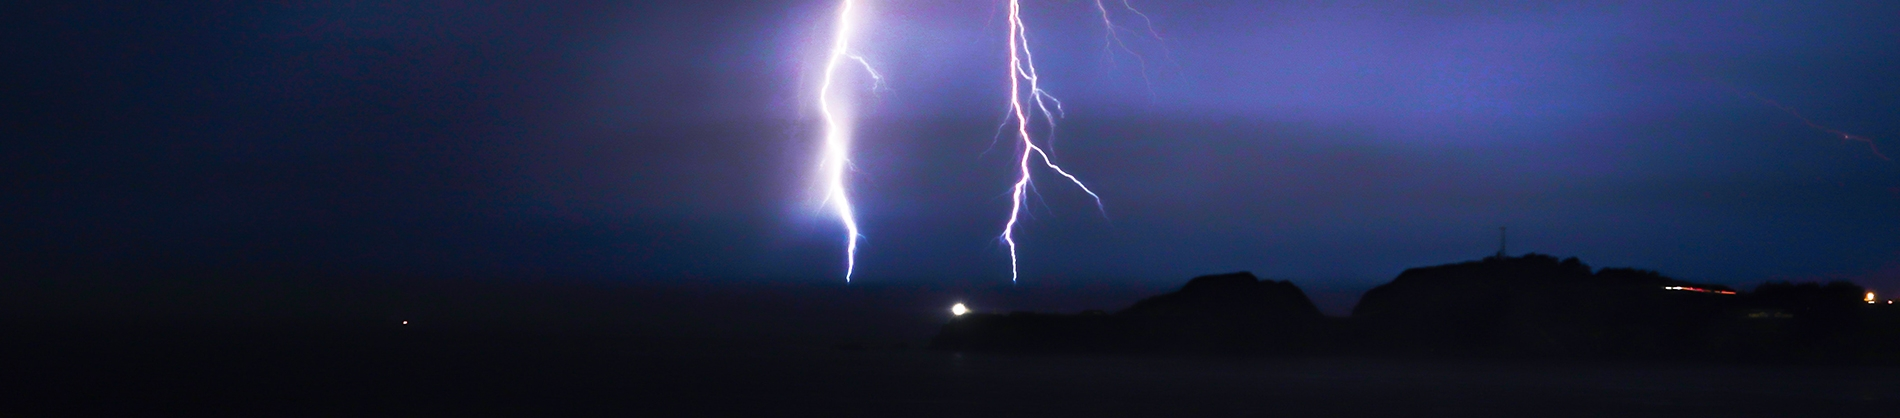 Lightening bolts flashing down on a dark landscape